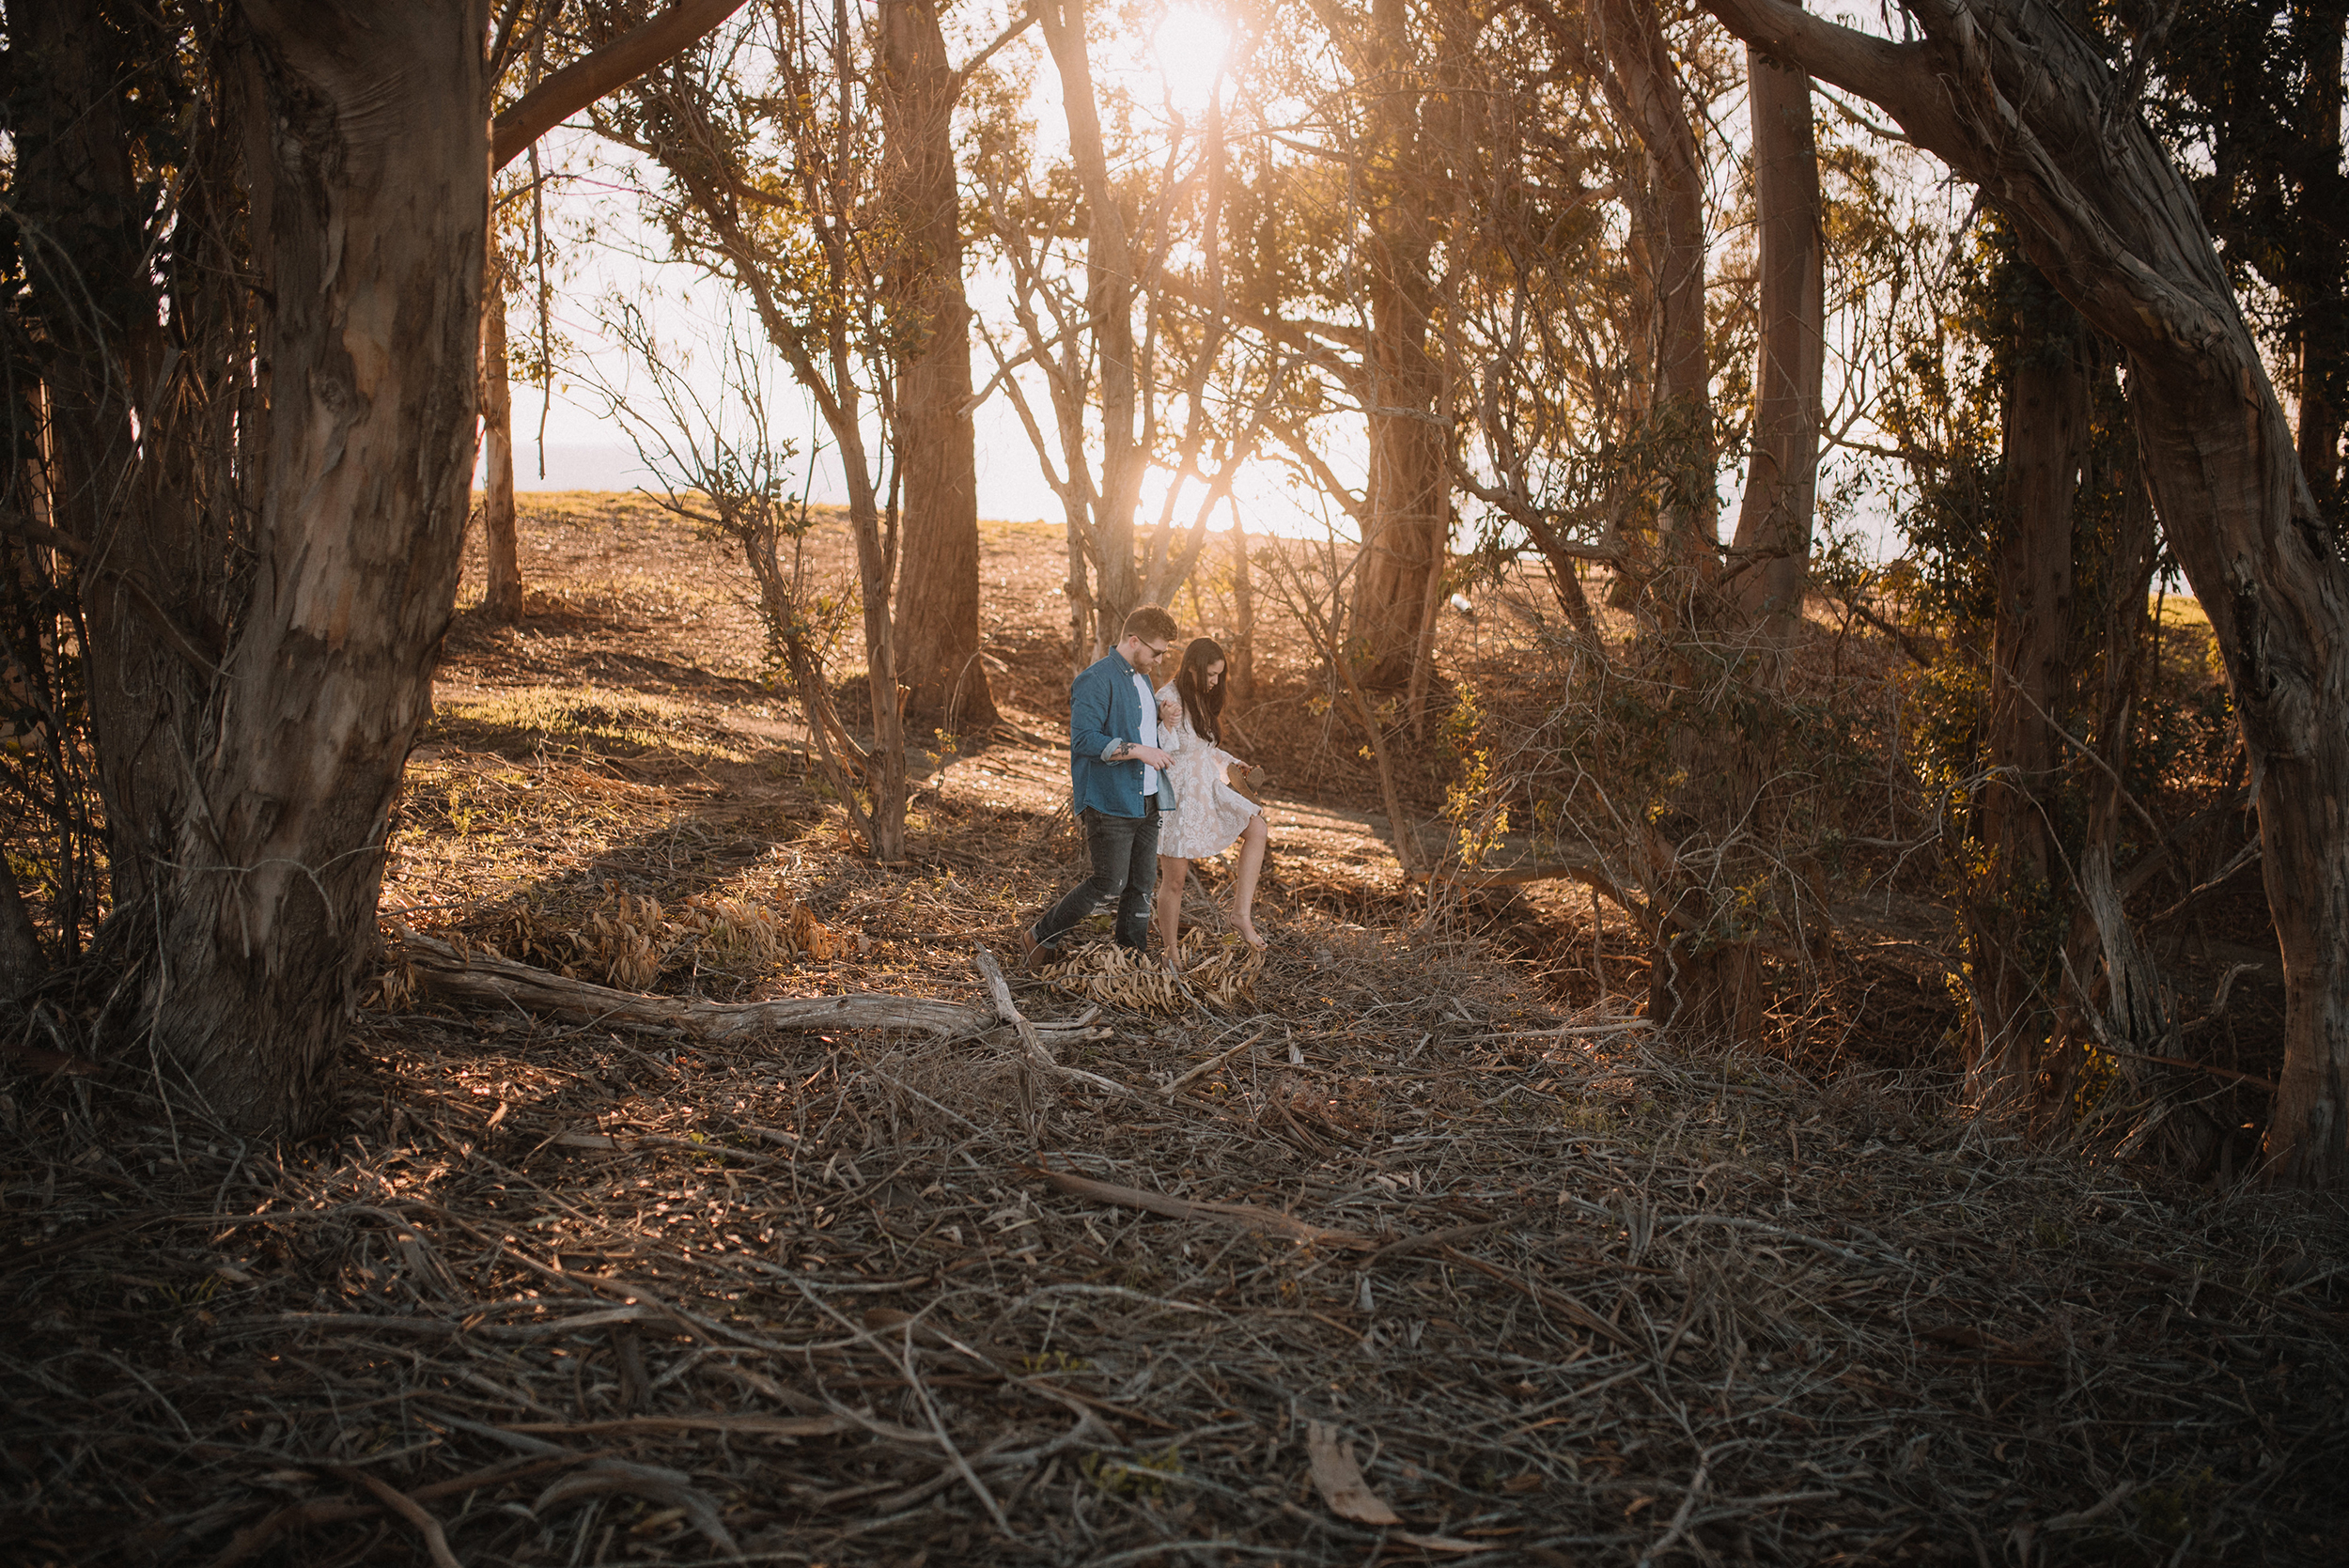 Colby-and-Jess-Adventure-Engagement-Photography-Morro-Bay-Montana-de-oro-California138.jpg